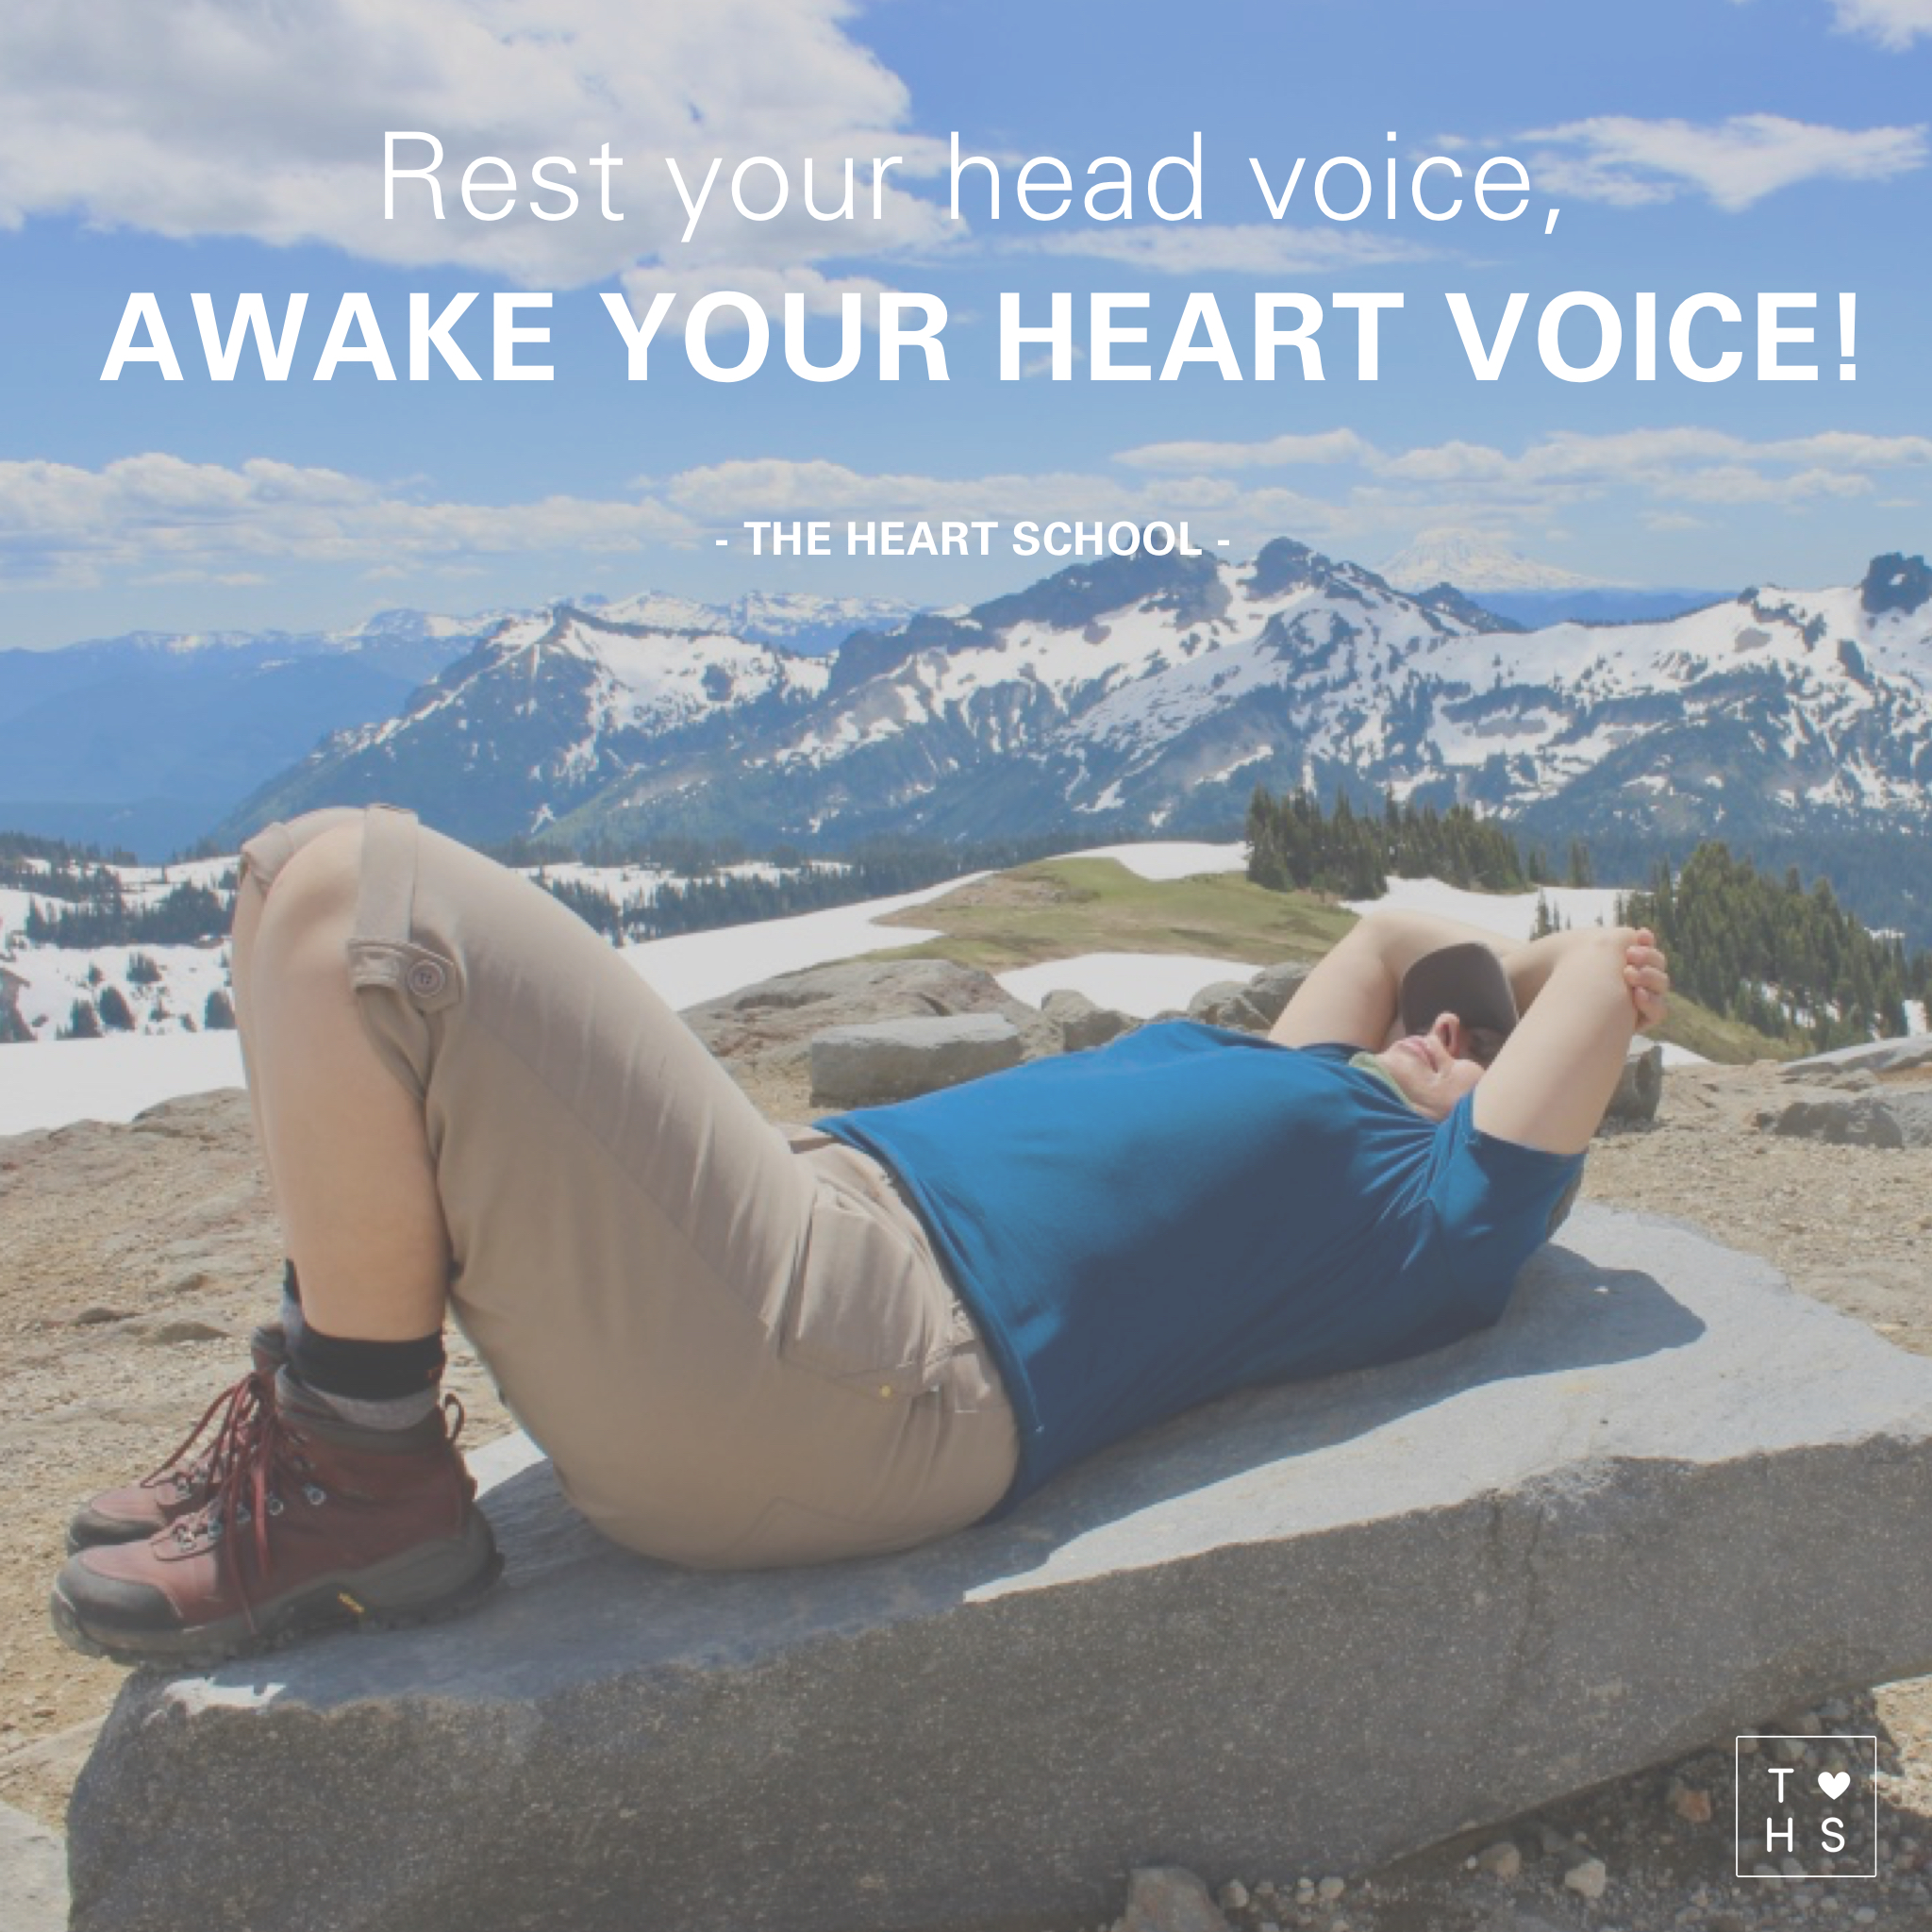 Rest is sacred. It is there we can listen to the quiet voice inside of us. The soft whispering words that speak the voice of our heart. Lay the loud voice of your head to rest today and invite the quiet voice of your heard to sing!